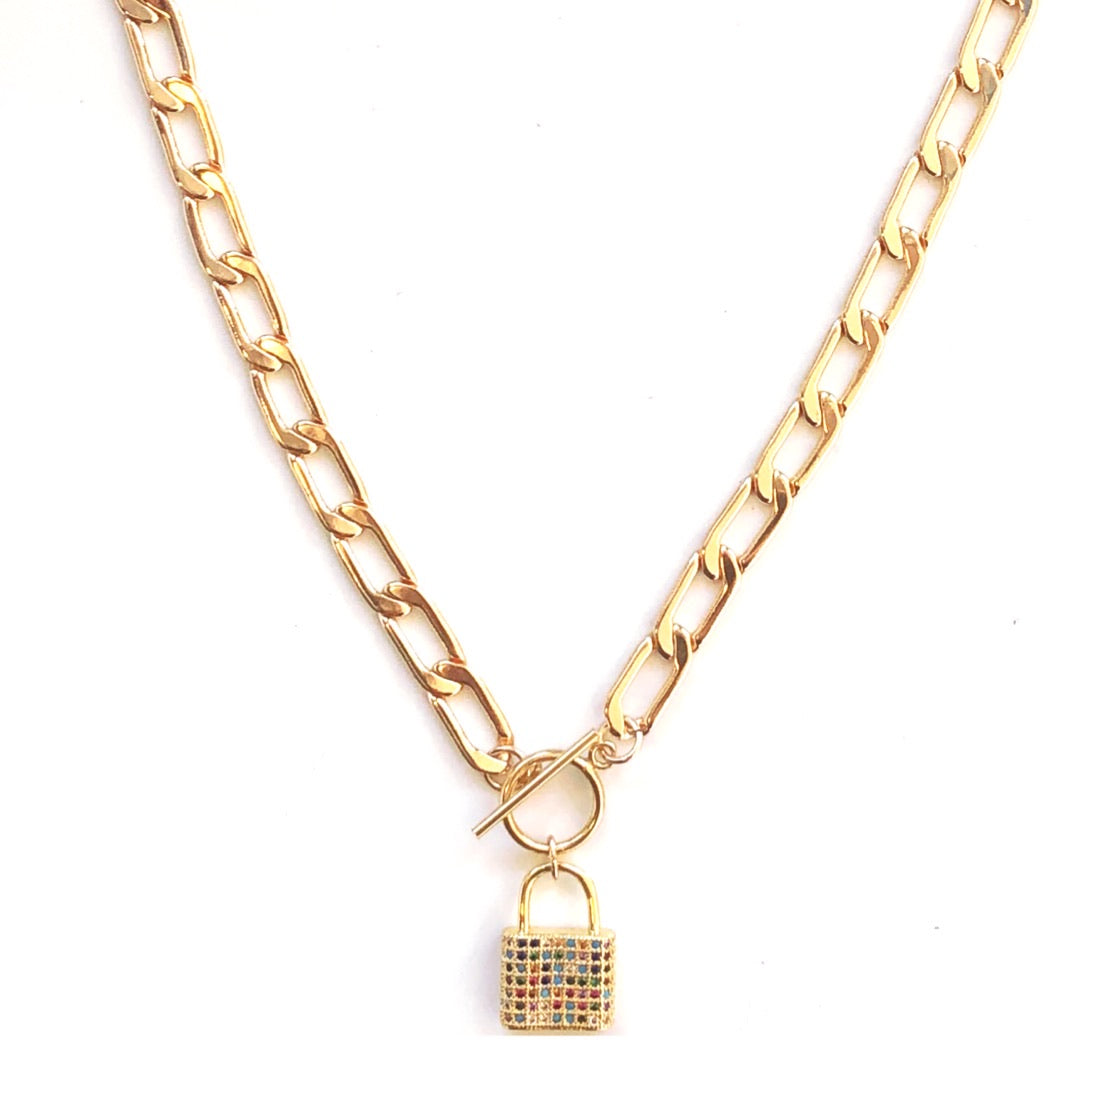 Ellie Gold Filled Padlock Necklace